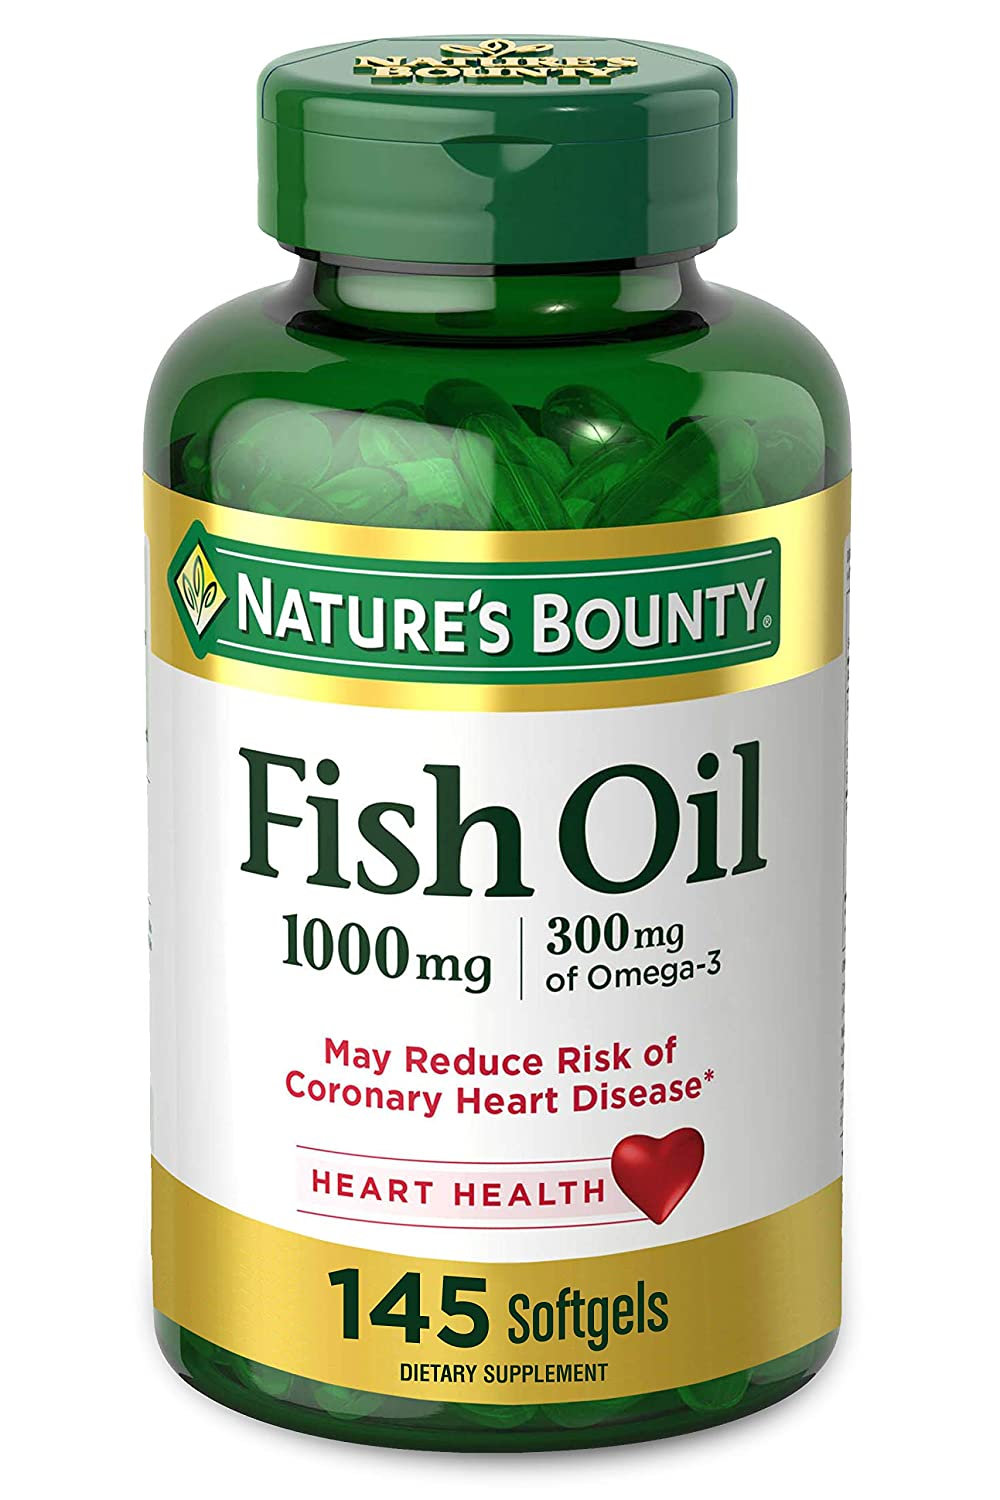 Nature's Bounty Fish Oil Omega-3 1000 mg Soft Gels, 145 Count